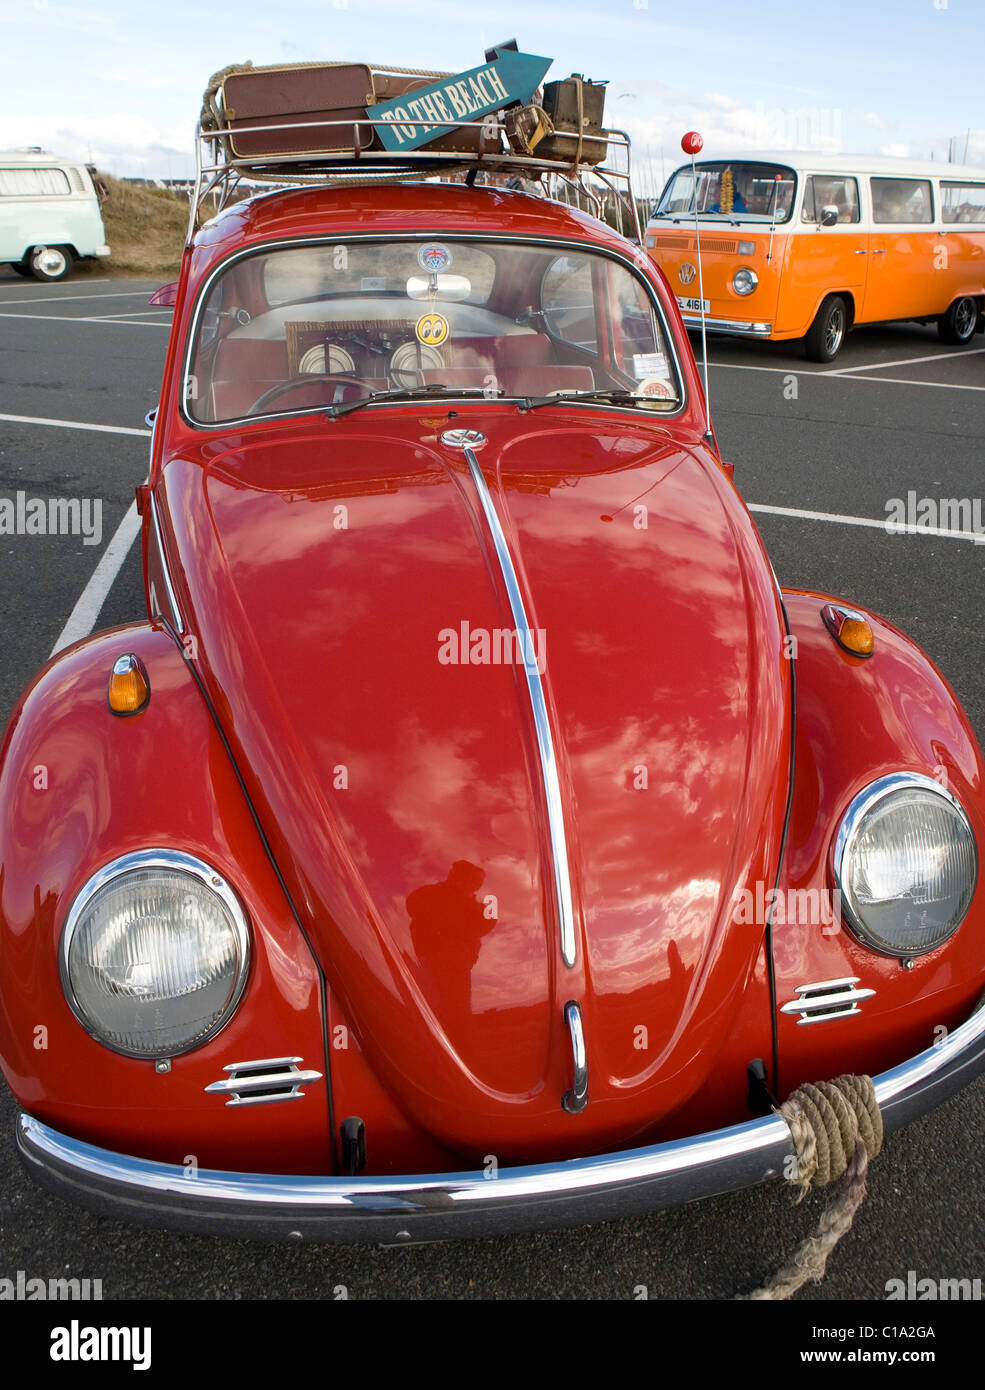 Volkswagen Close-up _ 1960's Vintage VW Beetle Vehicles _ Old Volkswagen Motor cars and Camper vans _ - Stock Image